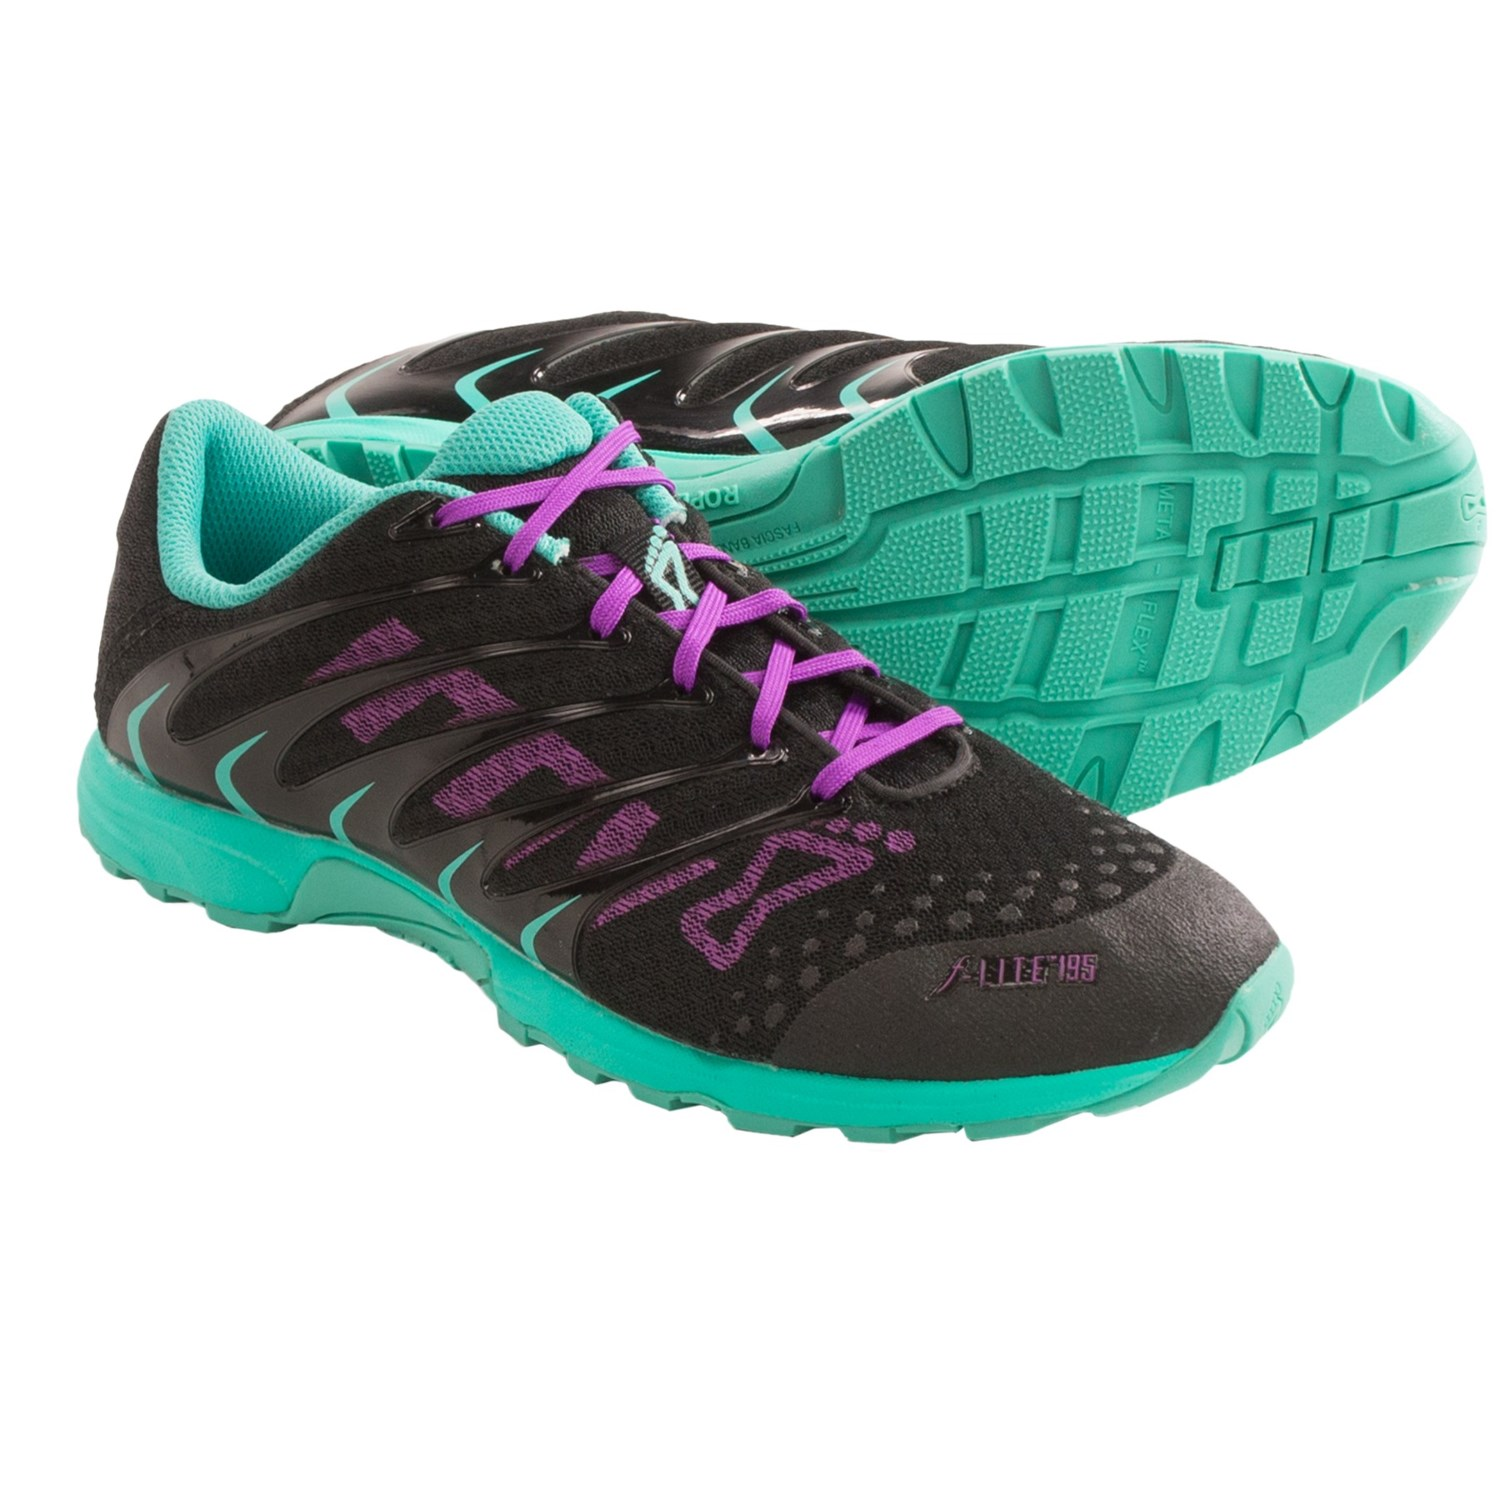 Inov-8 F-Lite 195 Cross Training Shoes (For Women) in Black/Teal